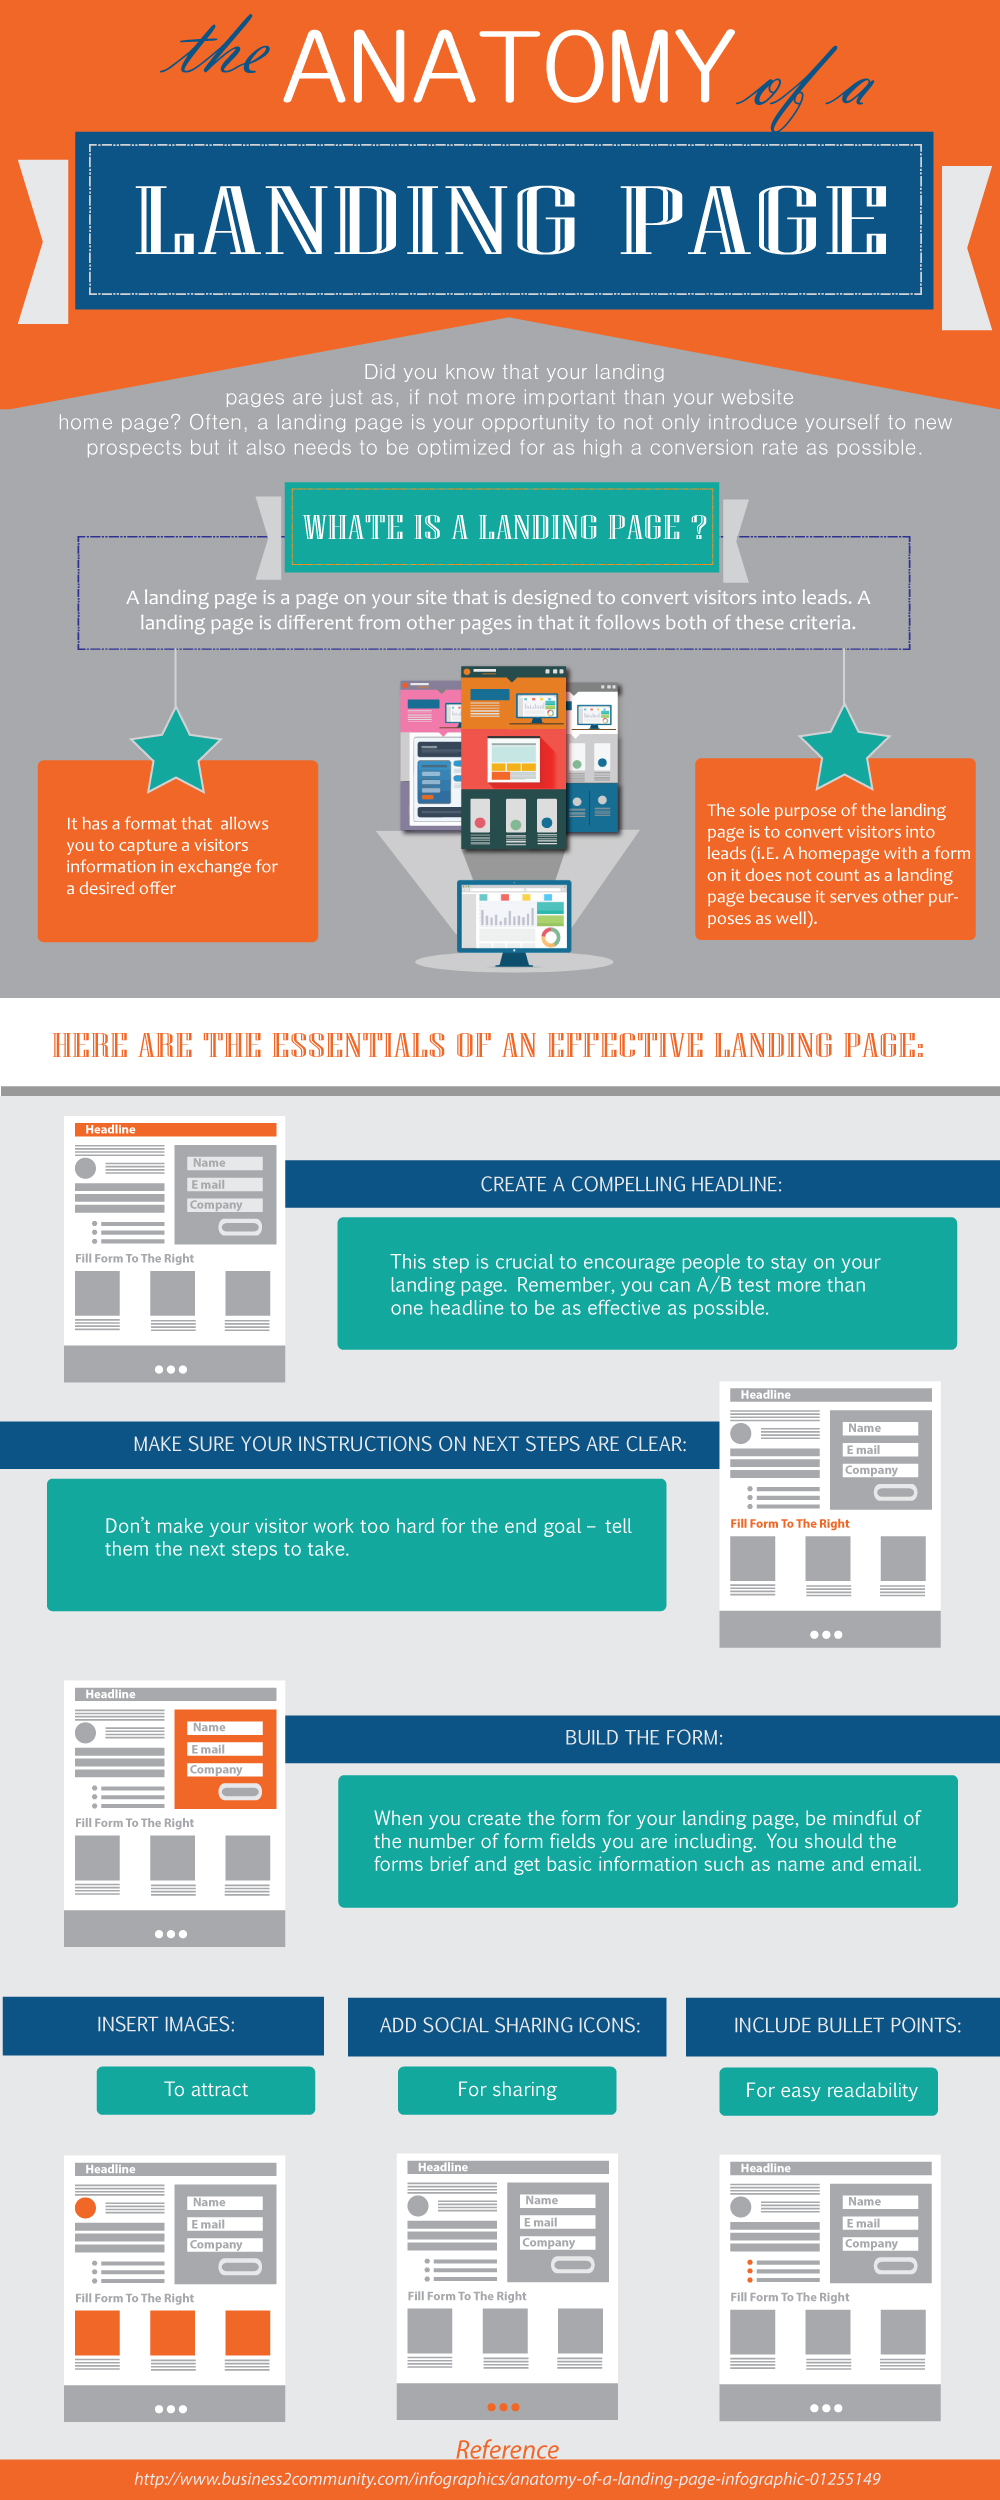 The Anatomy of A Landing Page | Prologic Web Design Blog